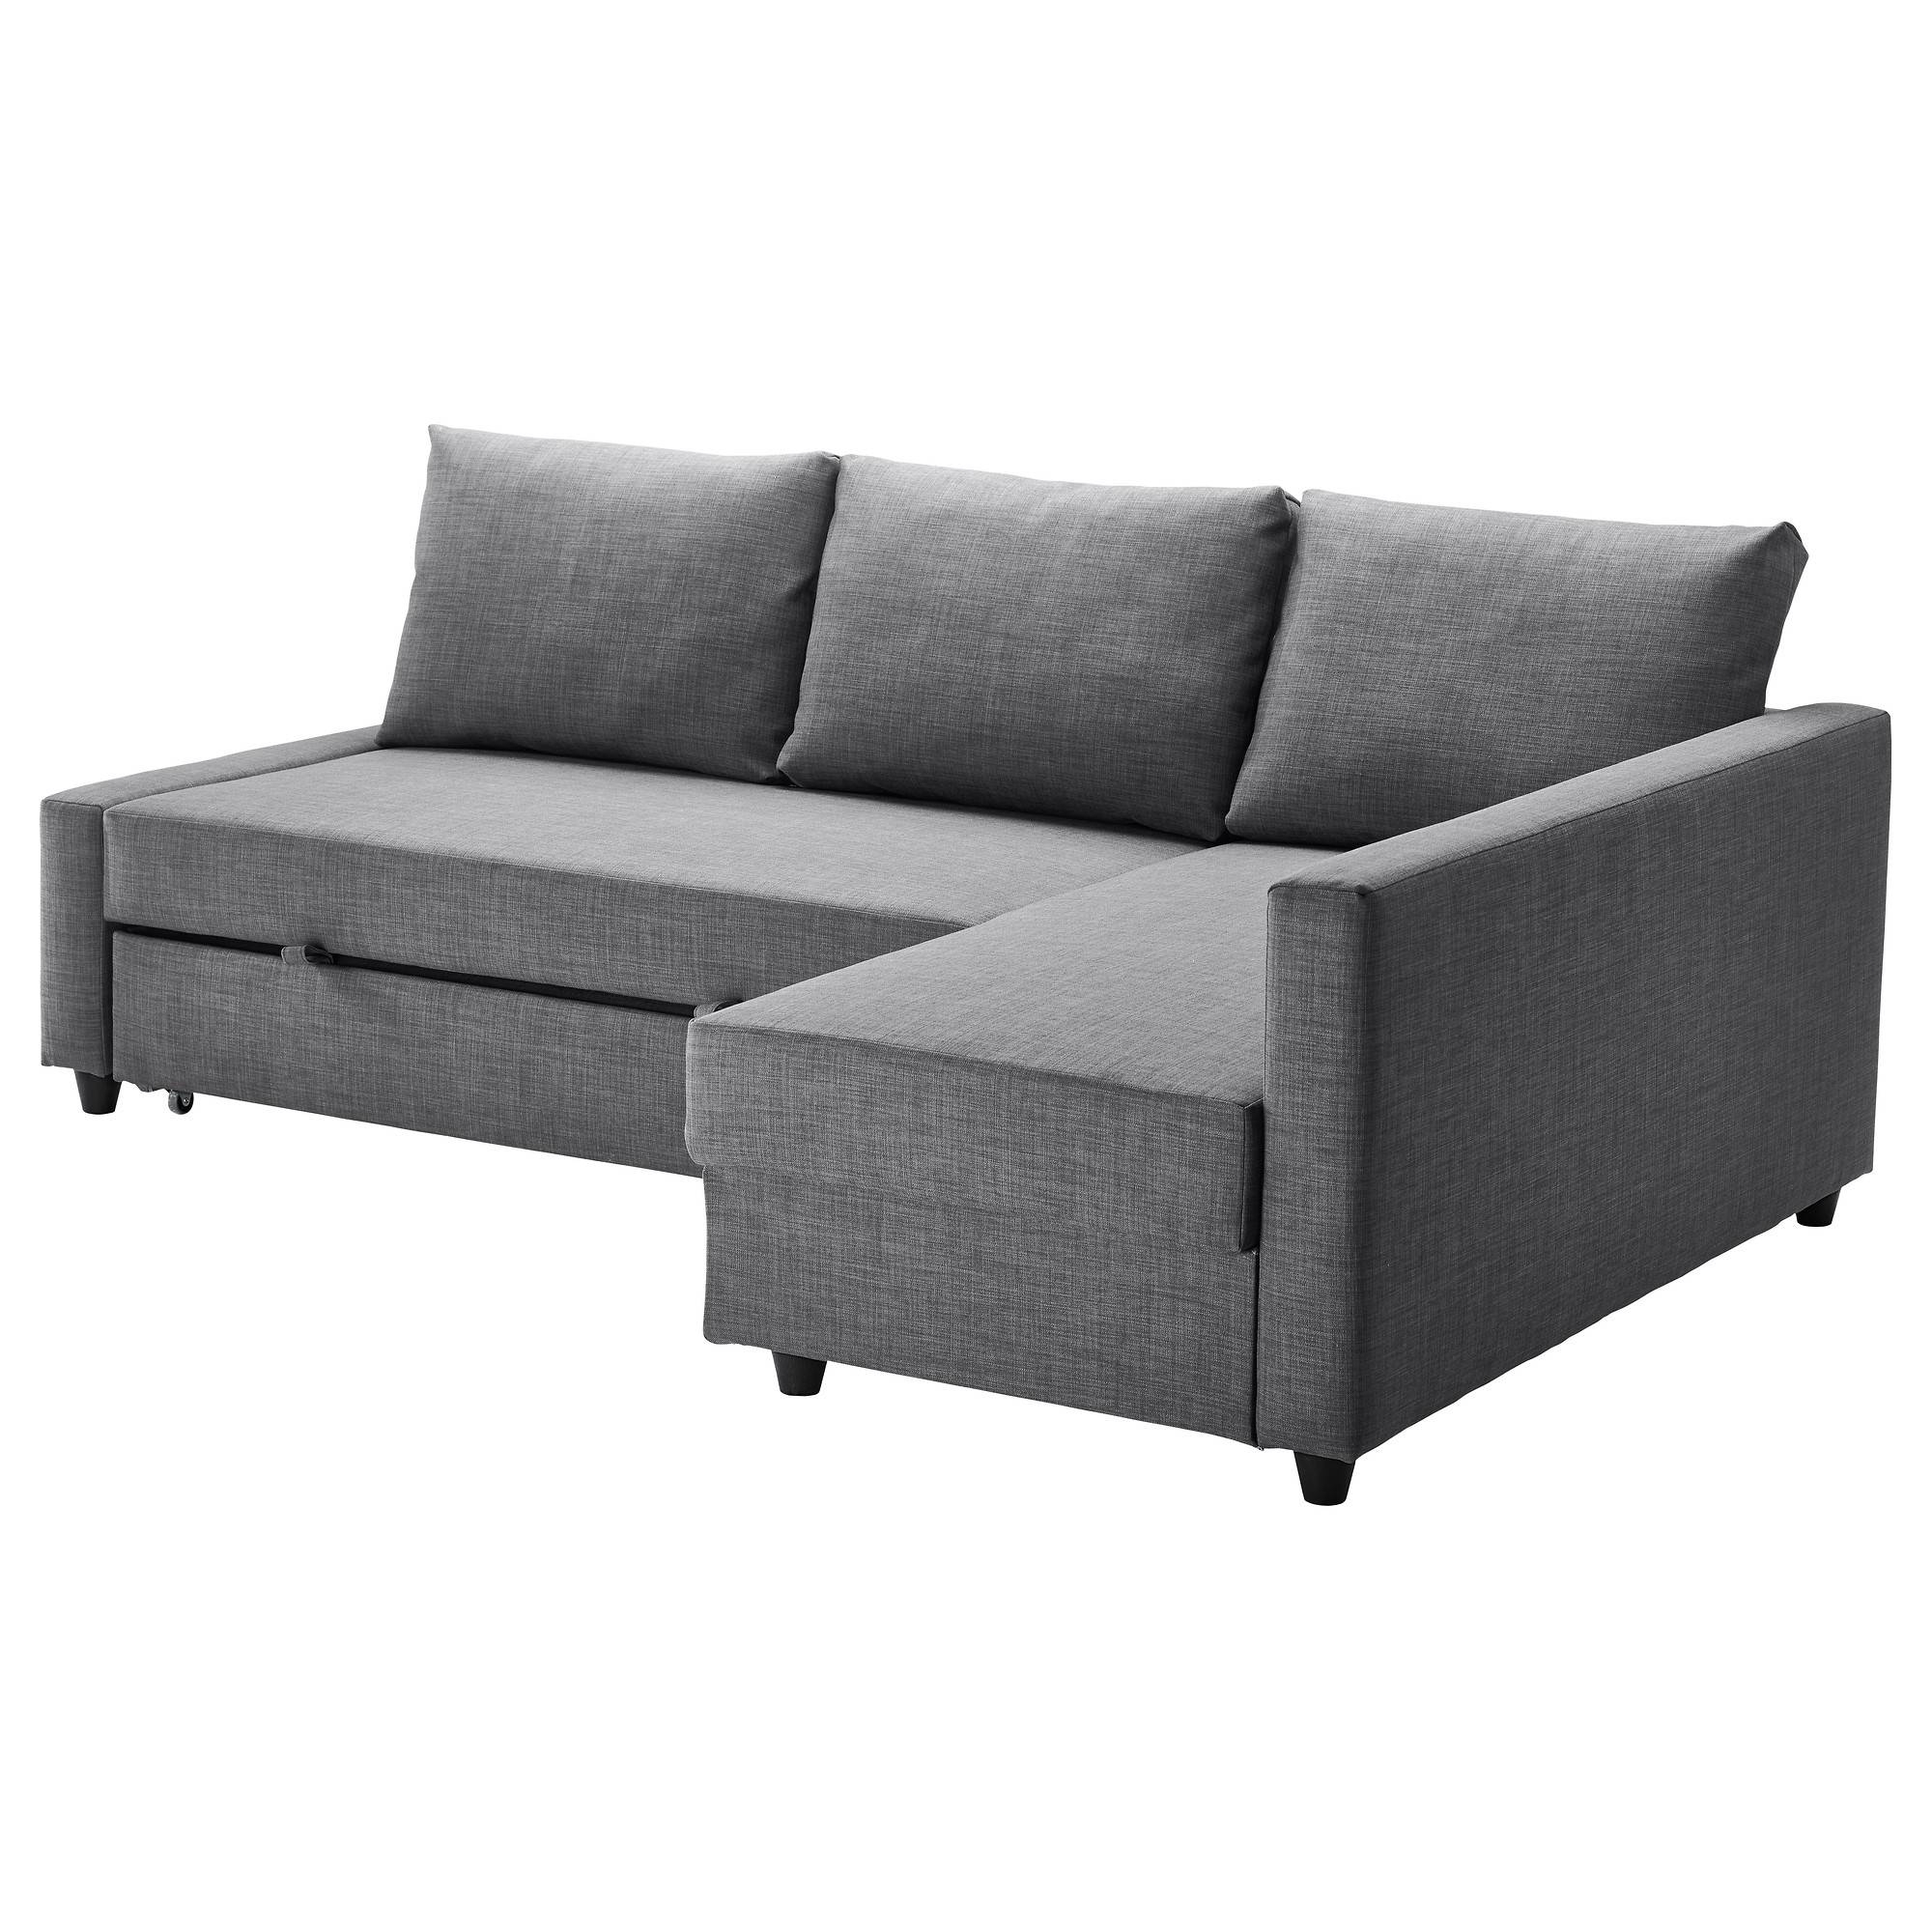 Sleeper Sofas & Chair Beds – Ikea Intended For Chair Sofas (View 15 of 30)